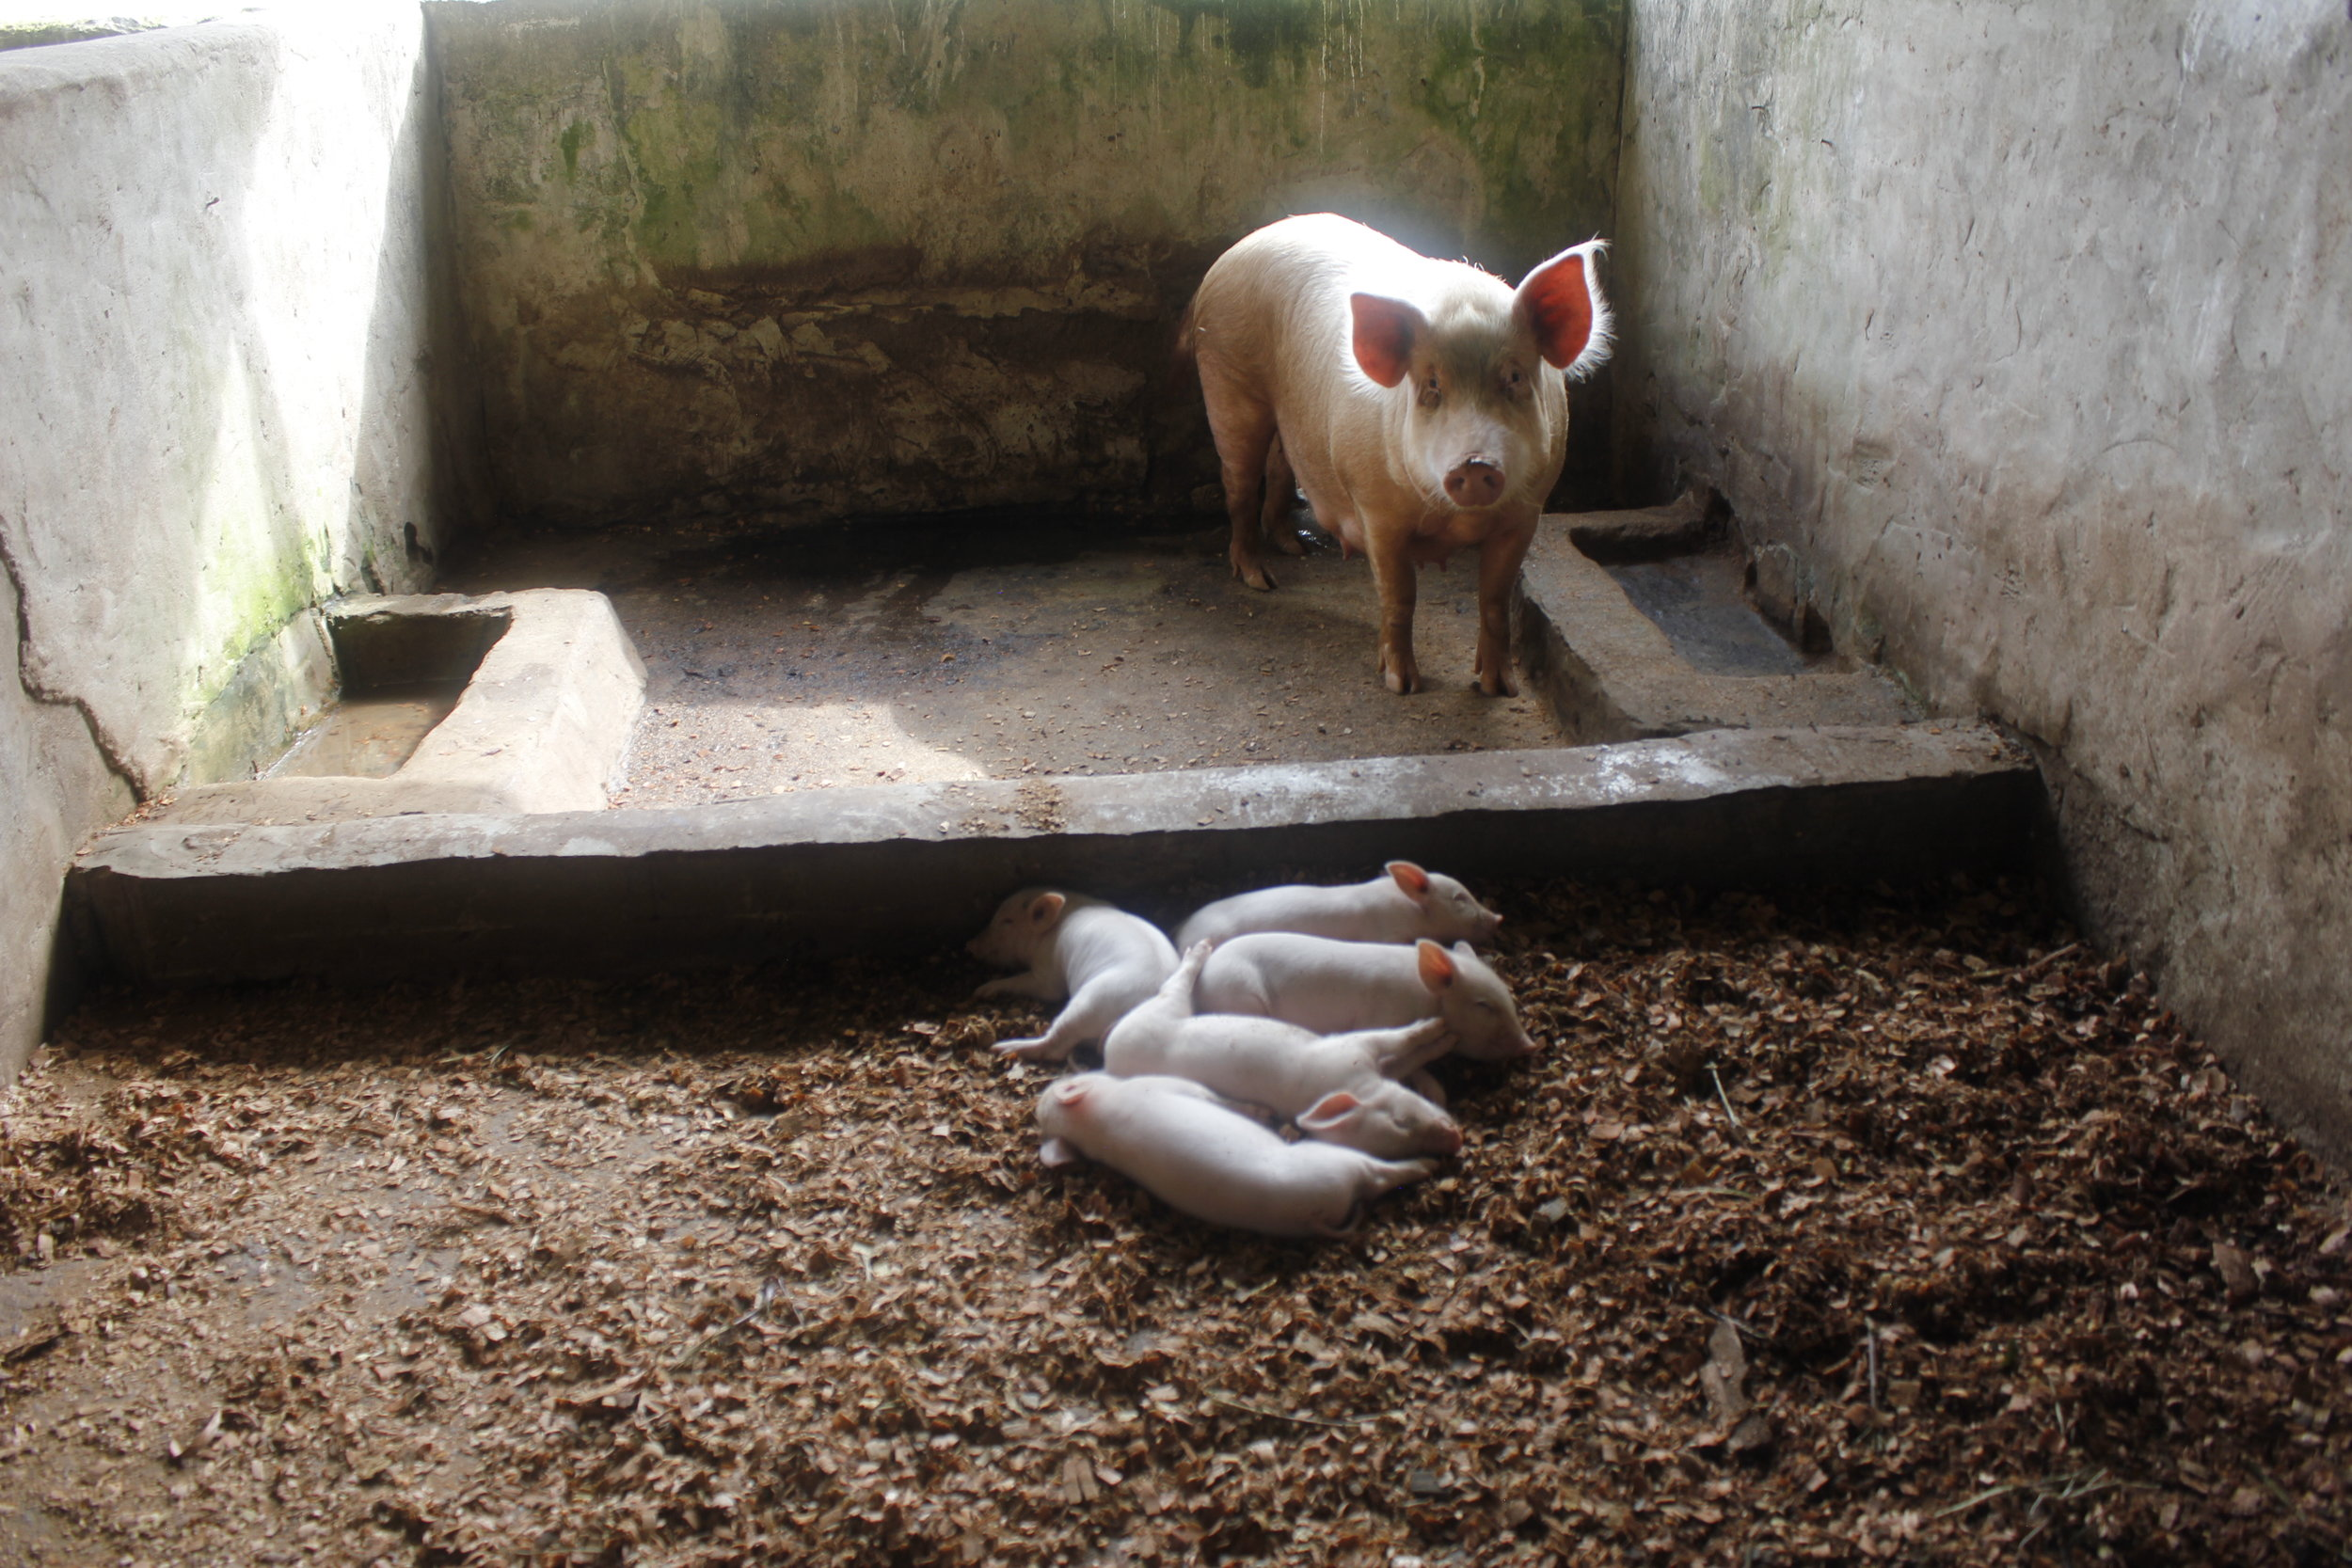 The Piggery Also Gives Students The Opportunity to Learn Animal Husbandry Skills